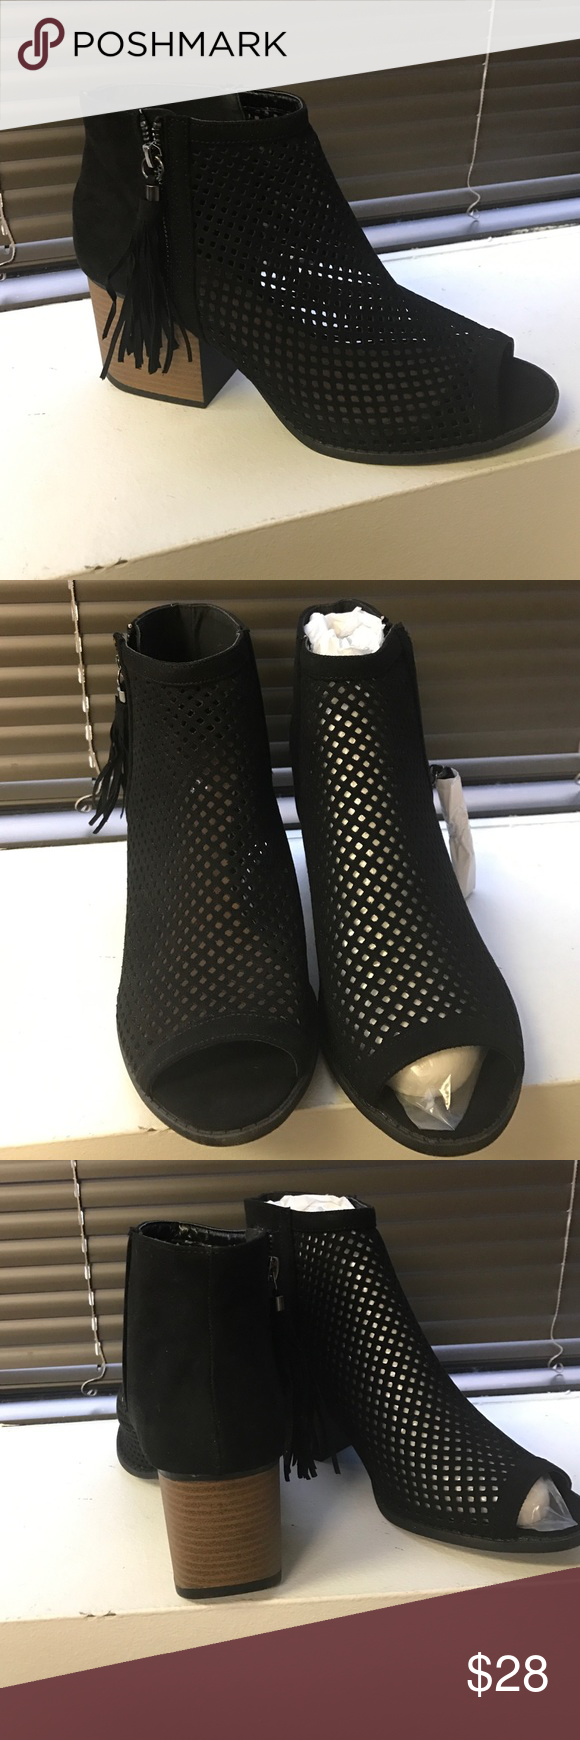 NWT • Black Mesh Suede Like Booties New never worn- excellent condition. Black mesh lower stacked heel ( about 2 inches) side zipper. Qupid Shoes Ankle Boots & Booties